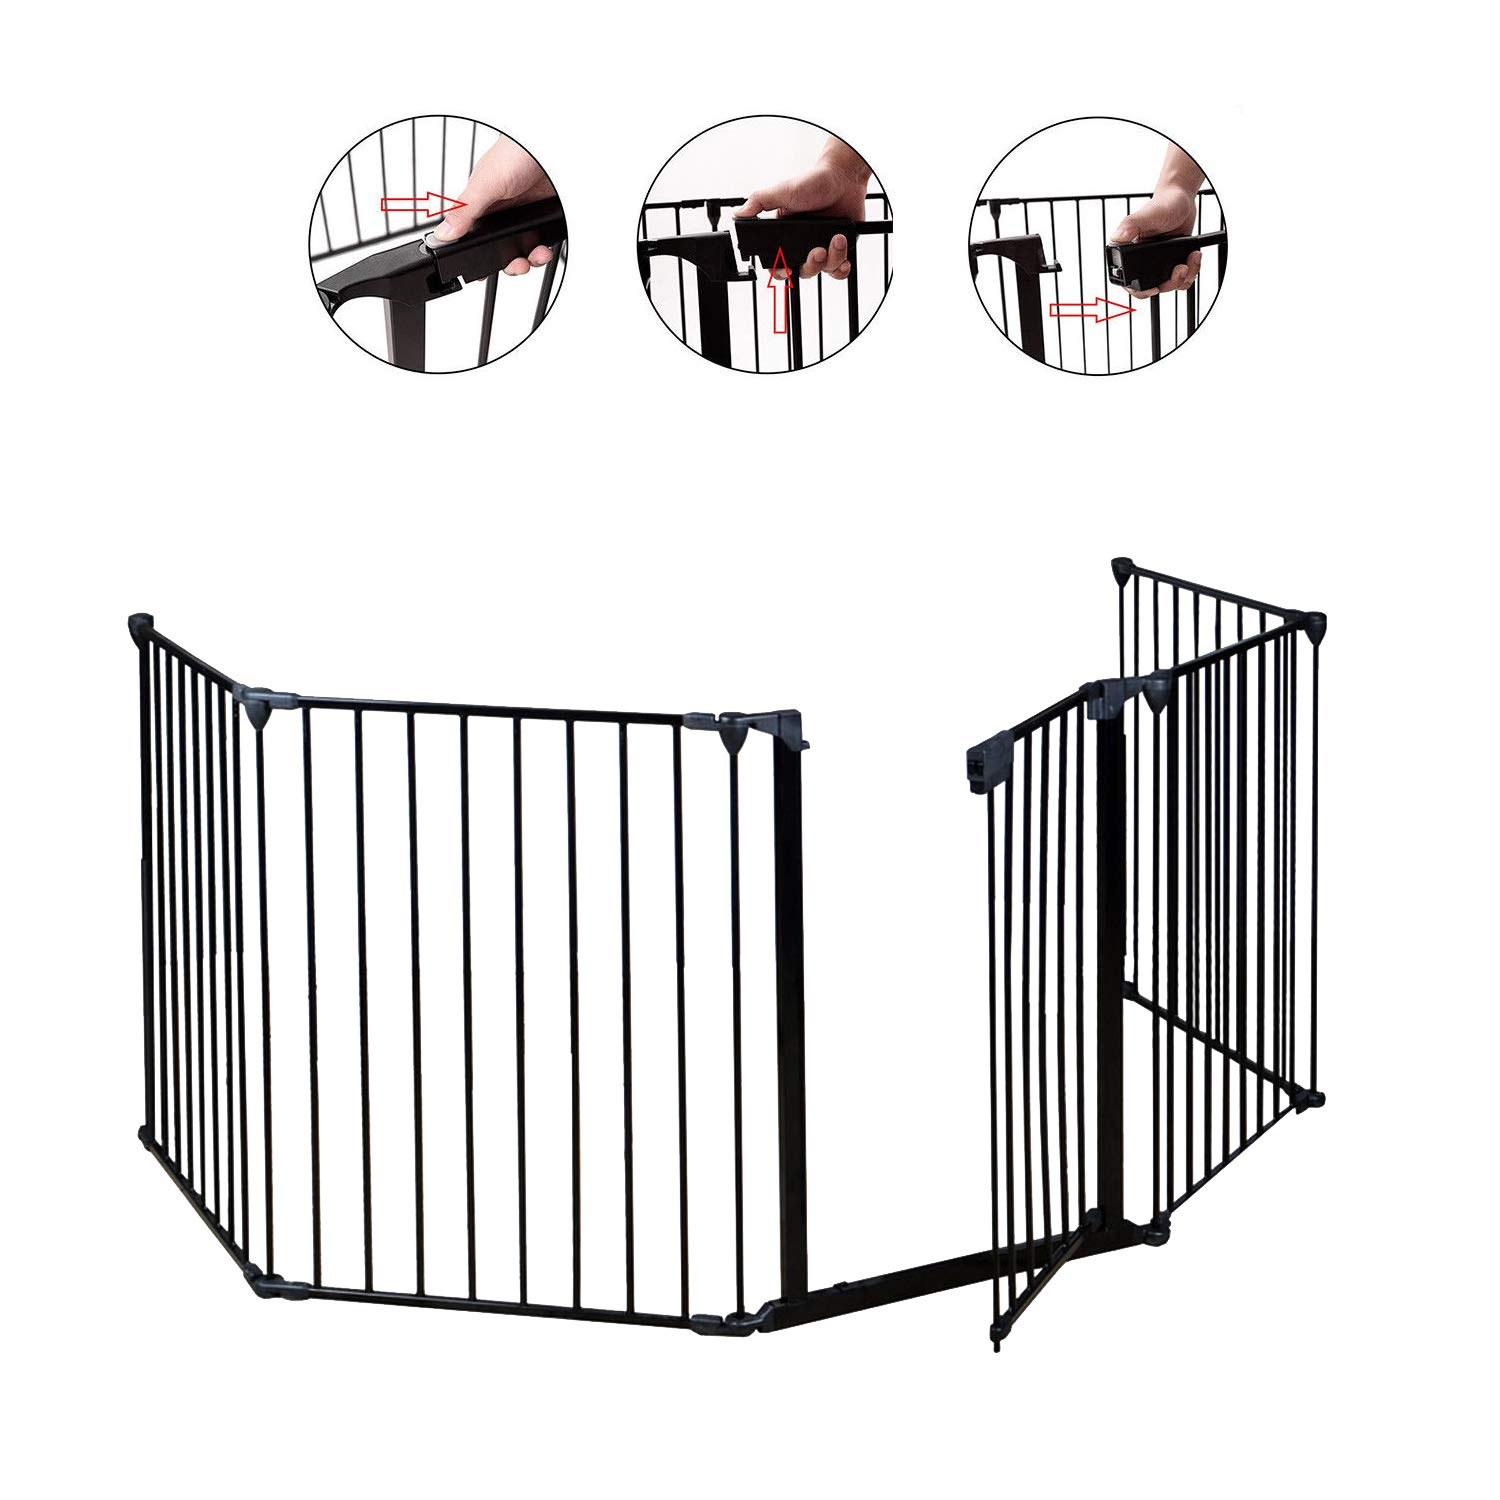 I-Choice Baby Safety Gate, Fireplace Fence, Metal Pet Gate, Walk Through Gate with Door, Home or Outdoor Play Yard for Child/Toddler / Kids/Dogs, Foldable